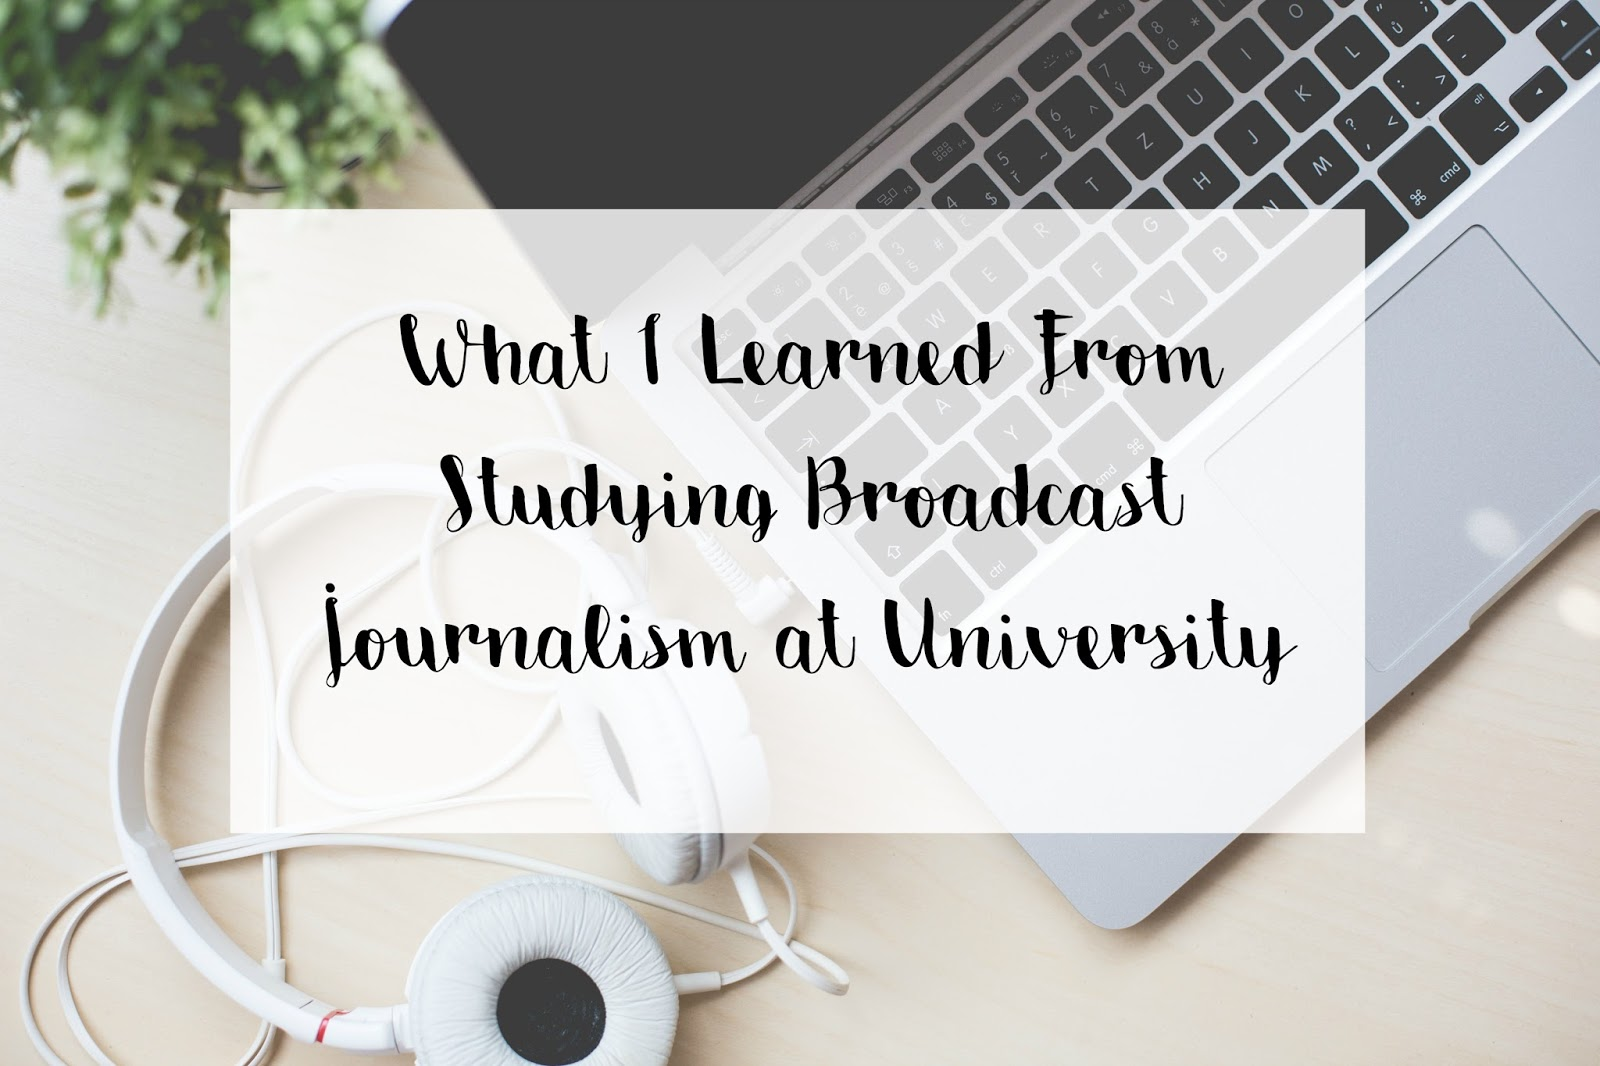 Broadcast Journalism, Studying Broadcast Journalism, Nottingham Trent University Broadcast Journalism, PGDip Broadcast Journalism, MA Broadcast Journalism, Journalism at uni, Katie Writes,